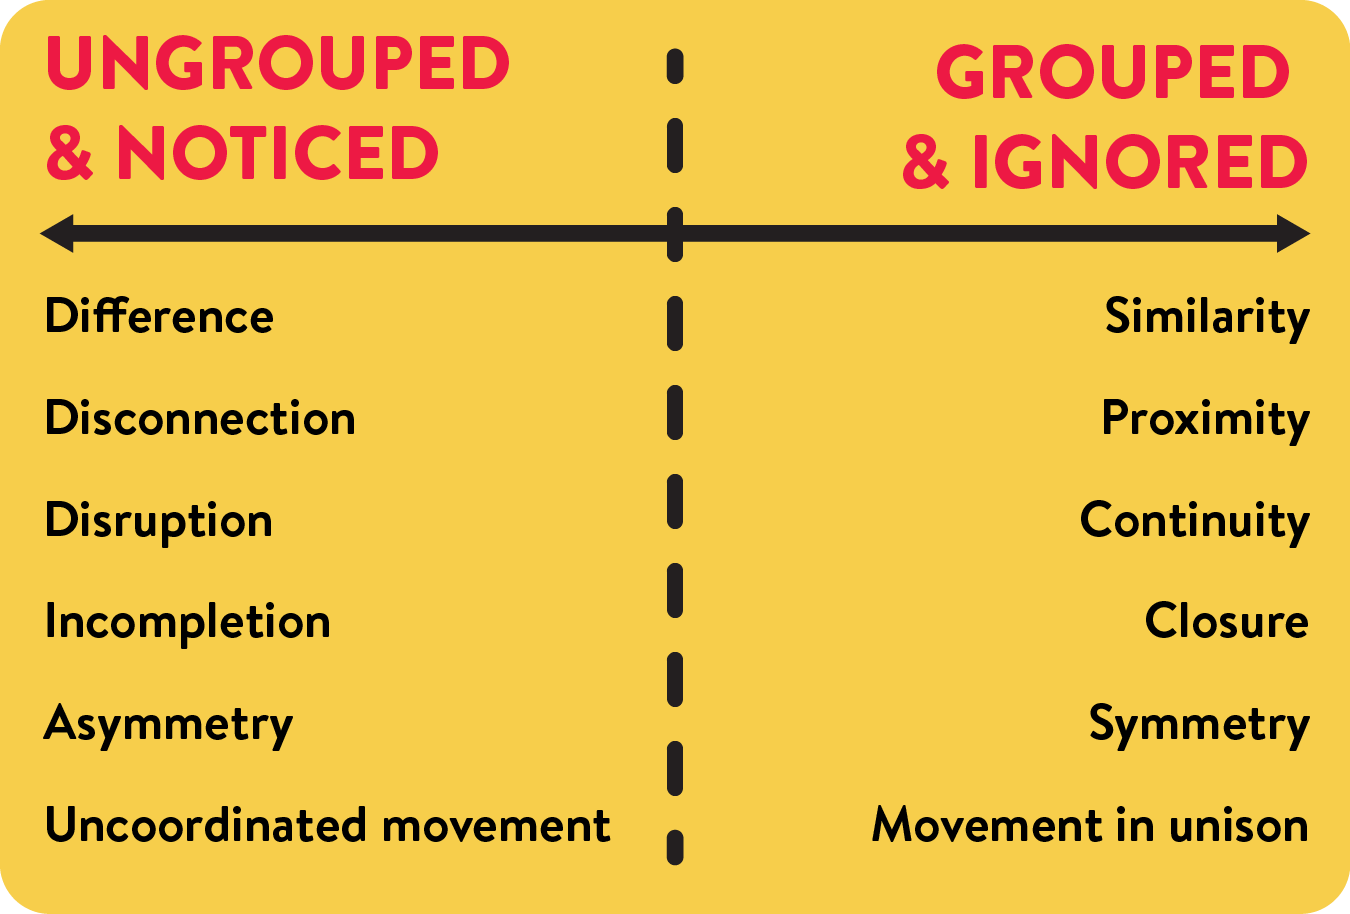 Standing Out: Ungrouped & Noticed vs. Grouped & Ignored